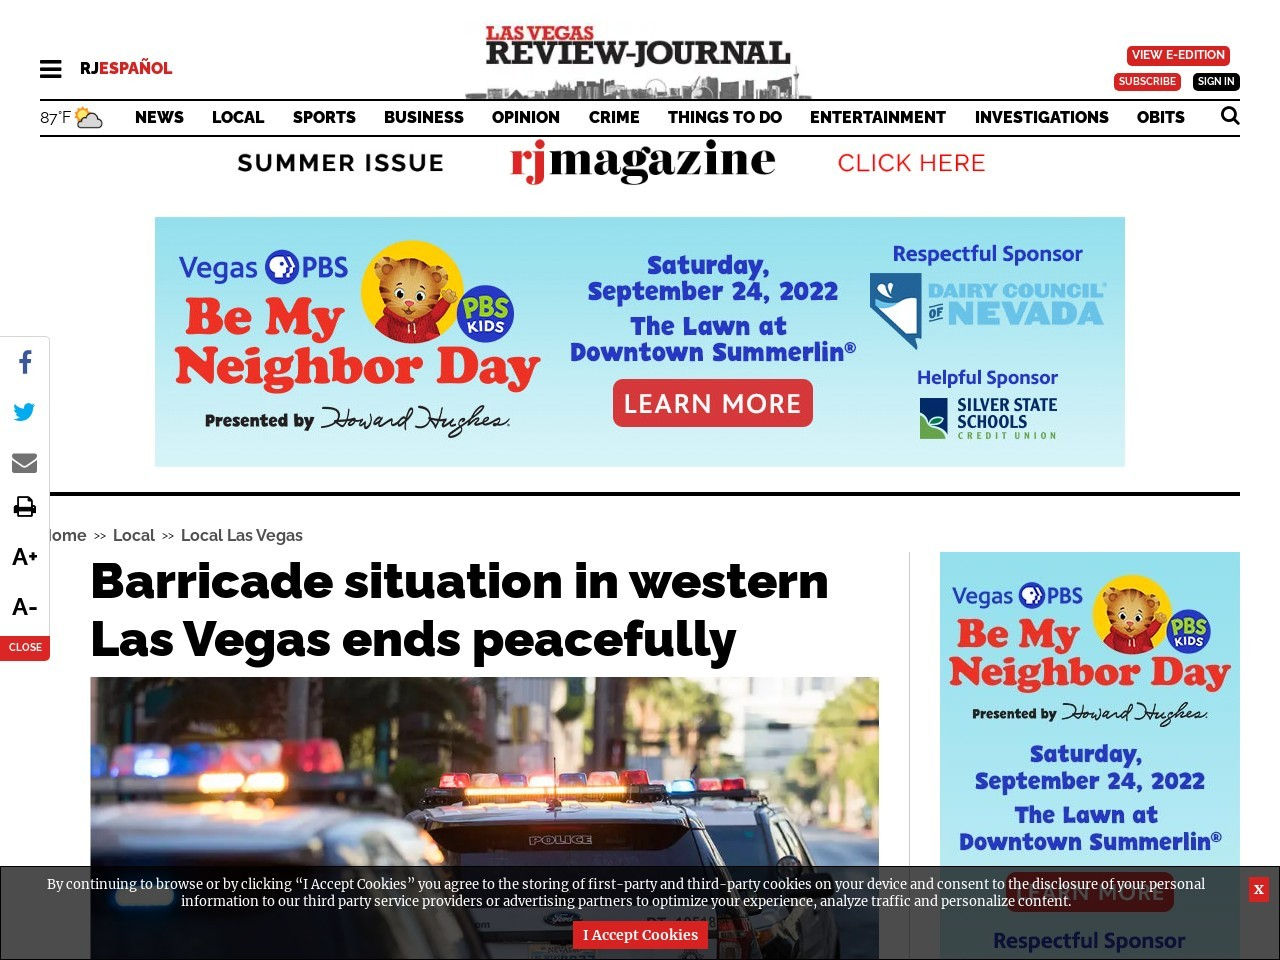 Barricade situation in western Las Vegas ends peacefully